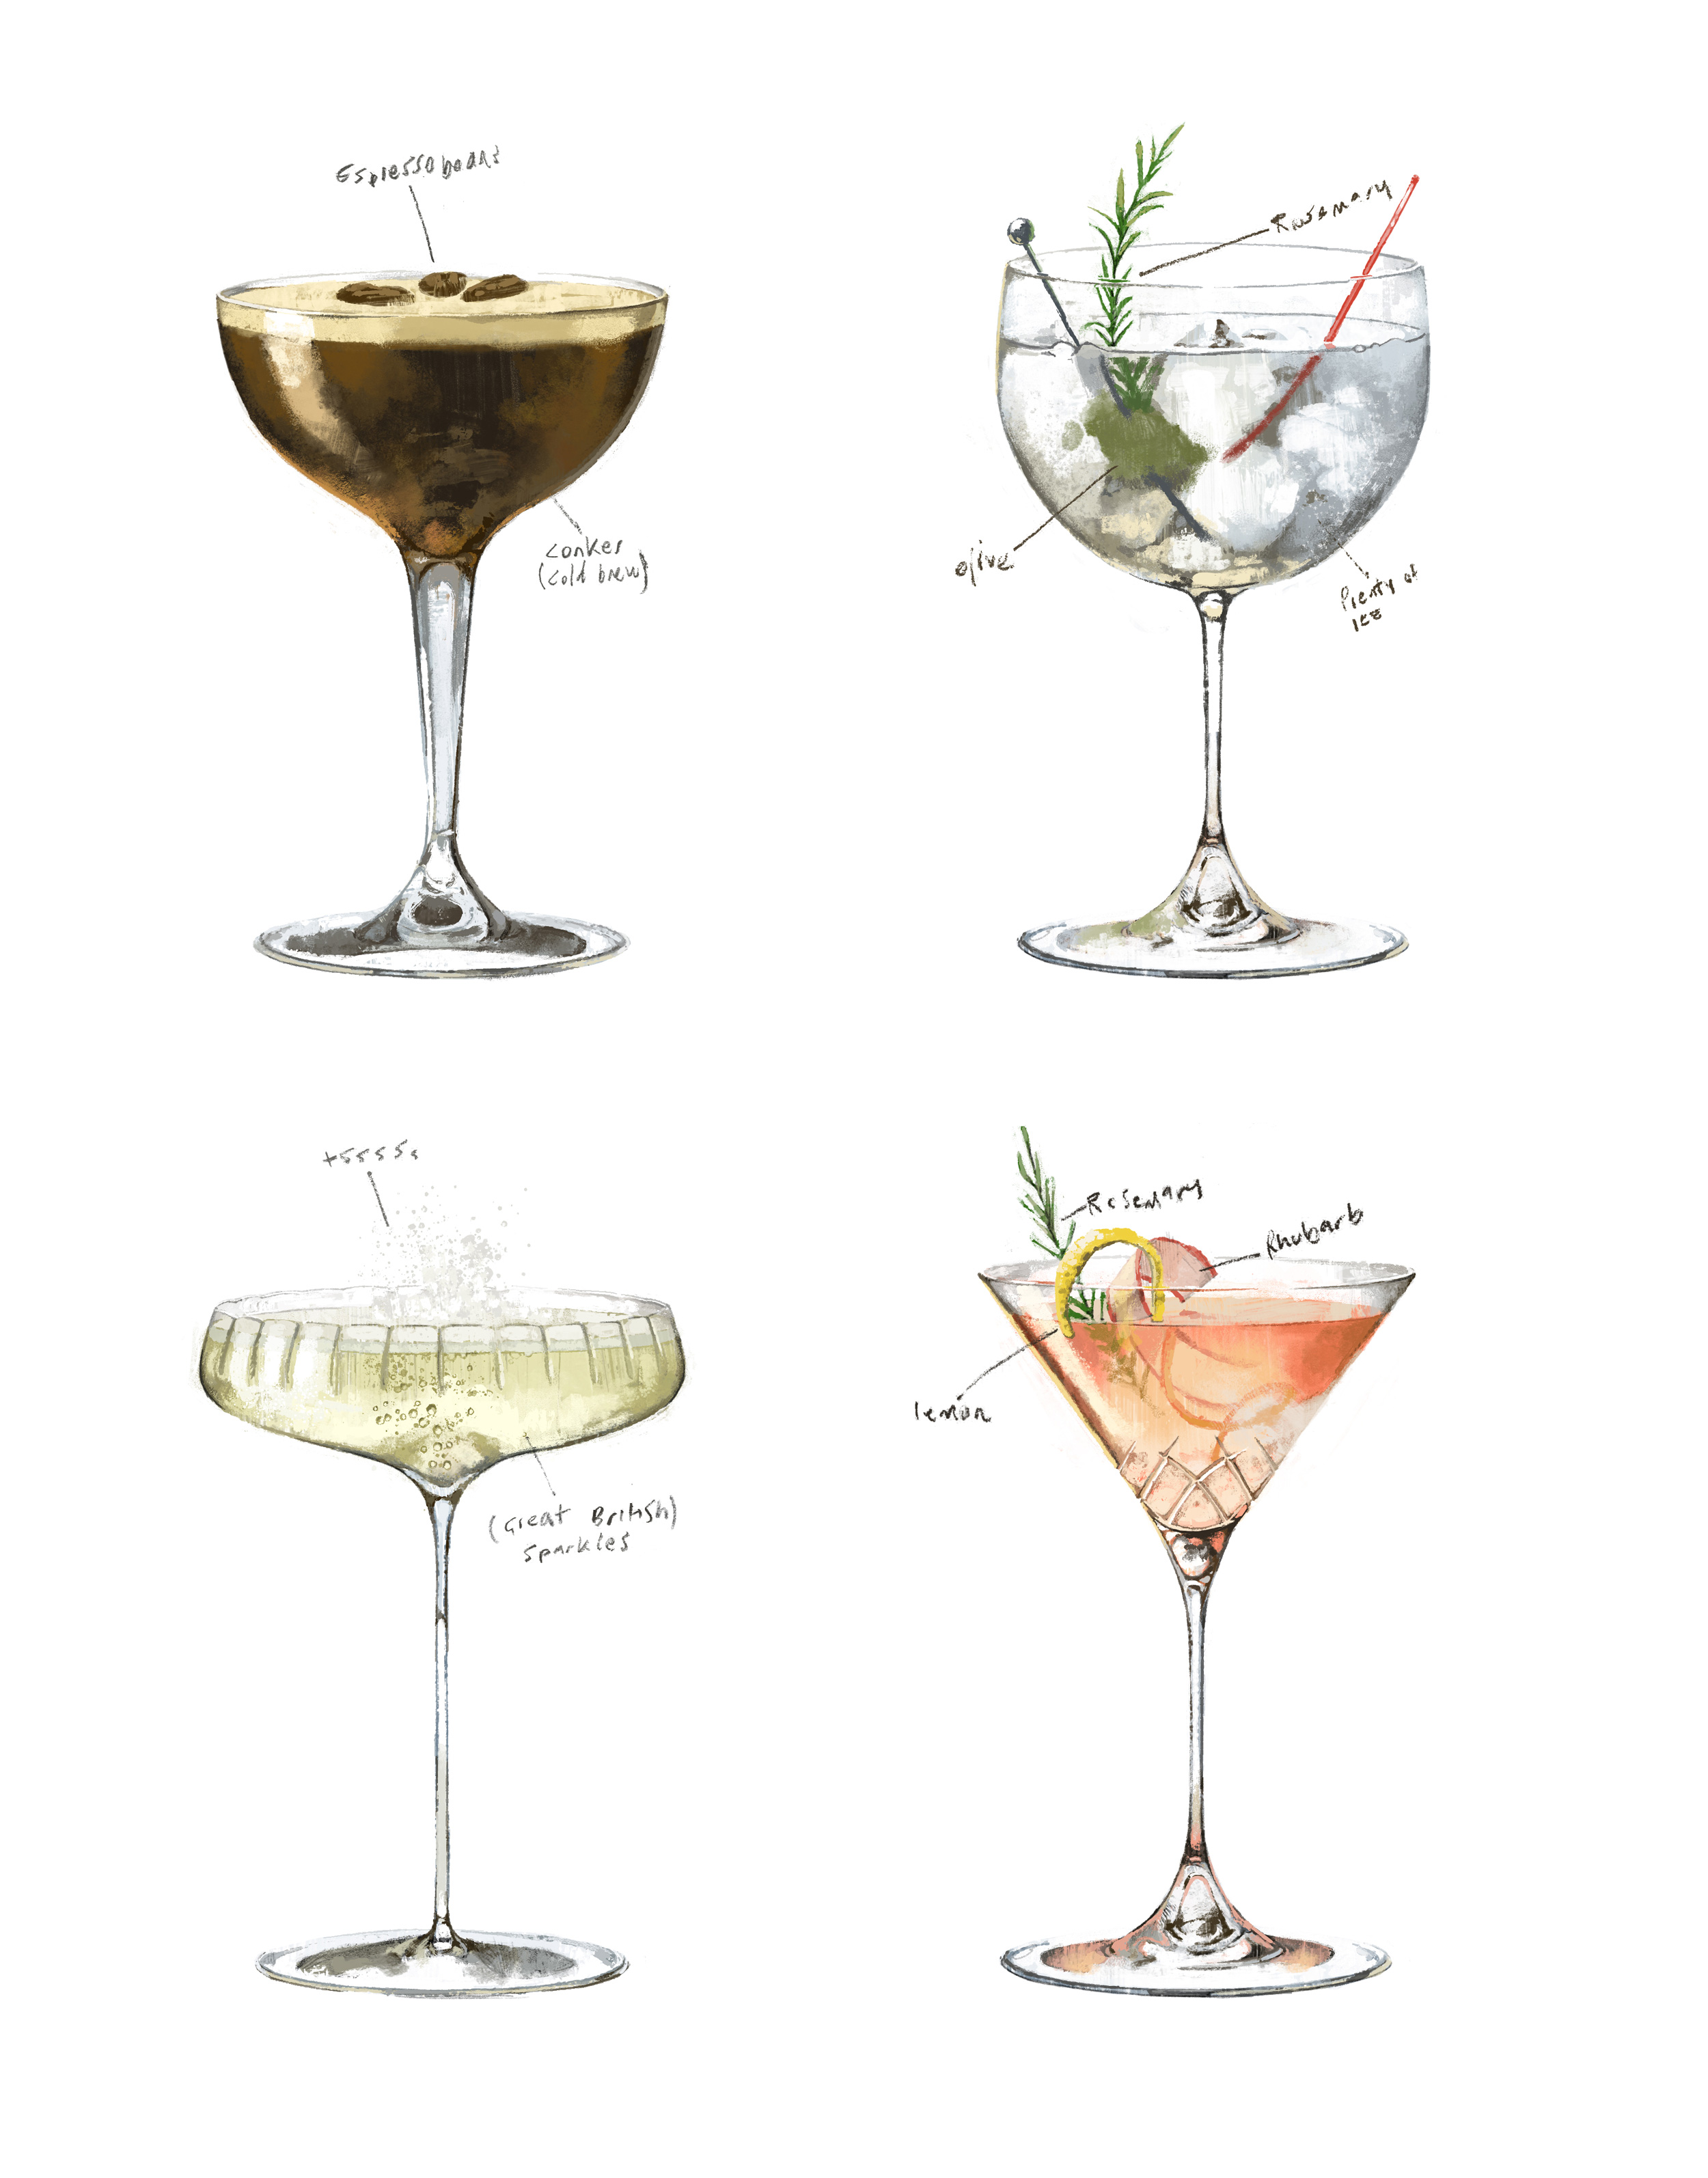 10 Drinking Rules Of The Summer for The Telegraph by Marc Aspinall